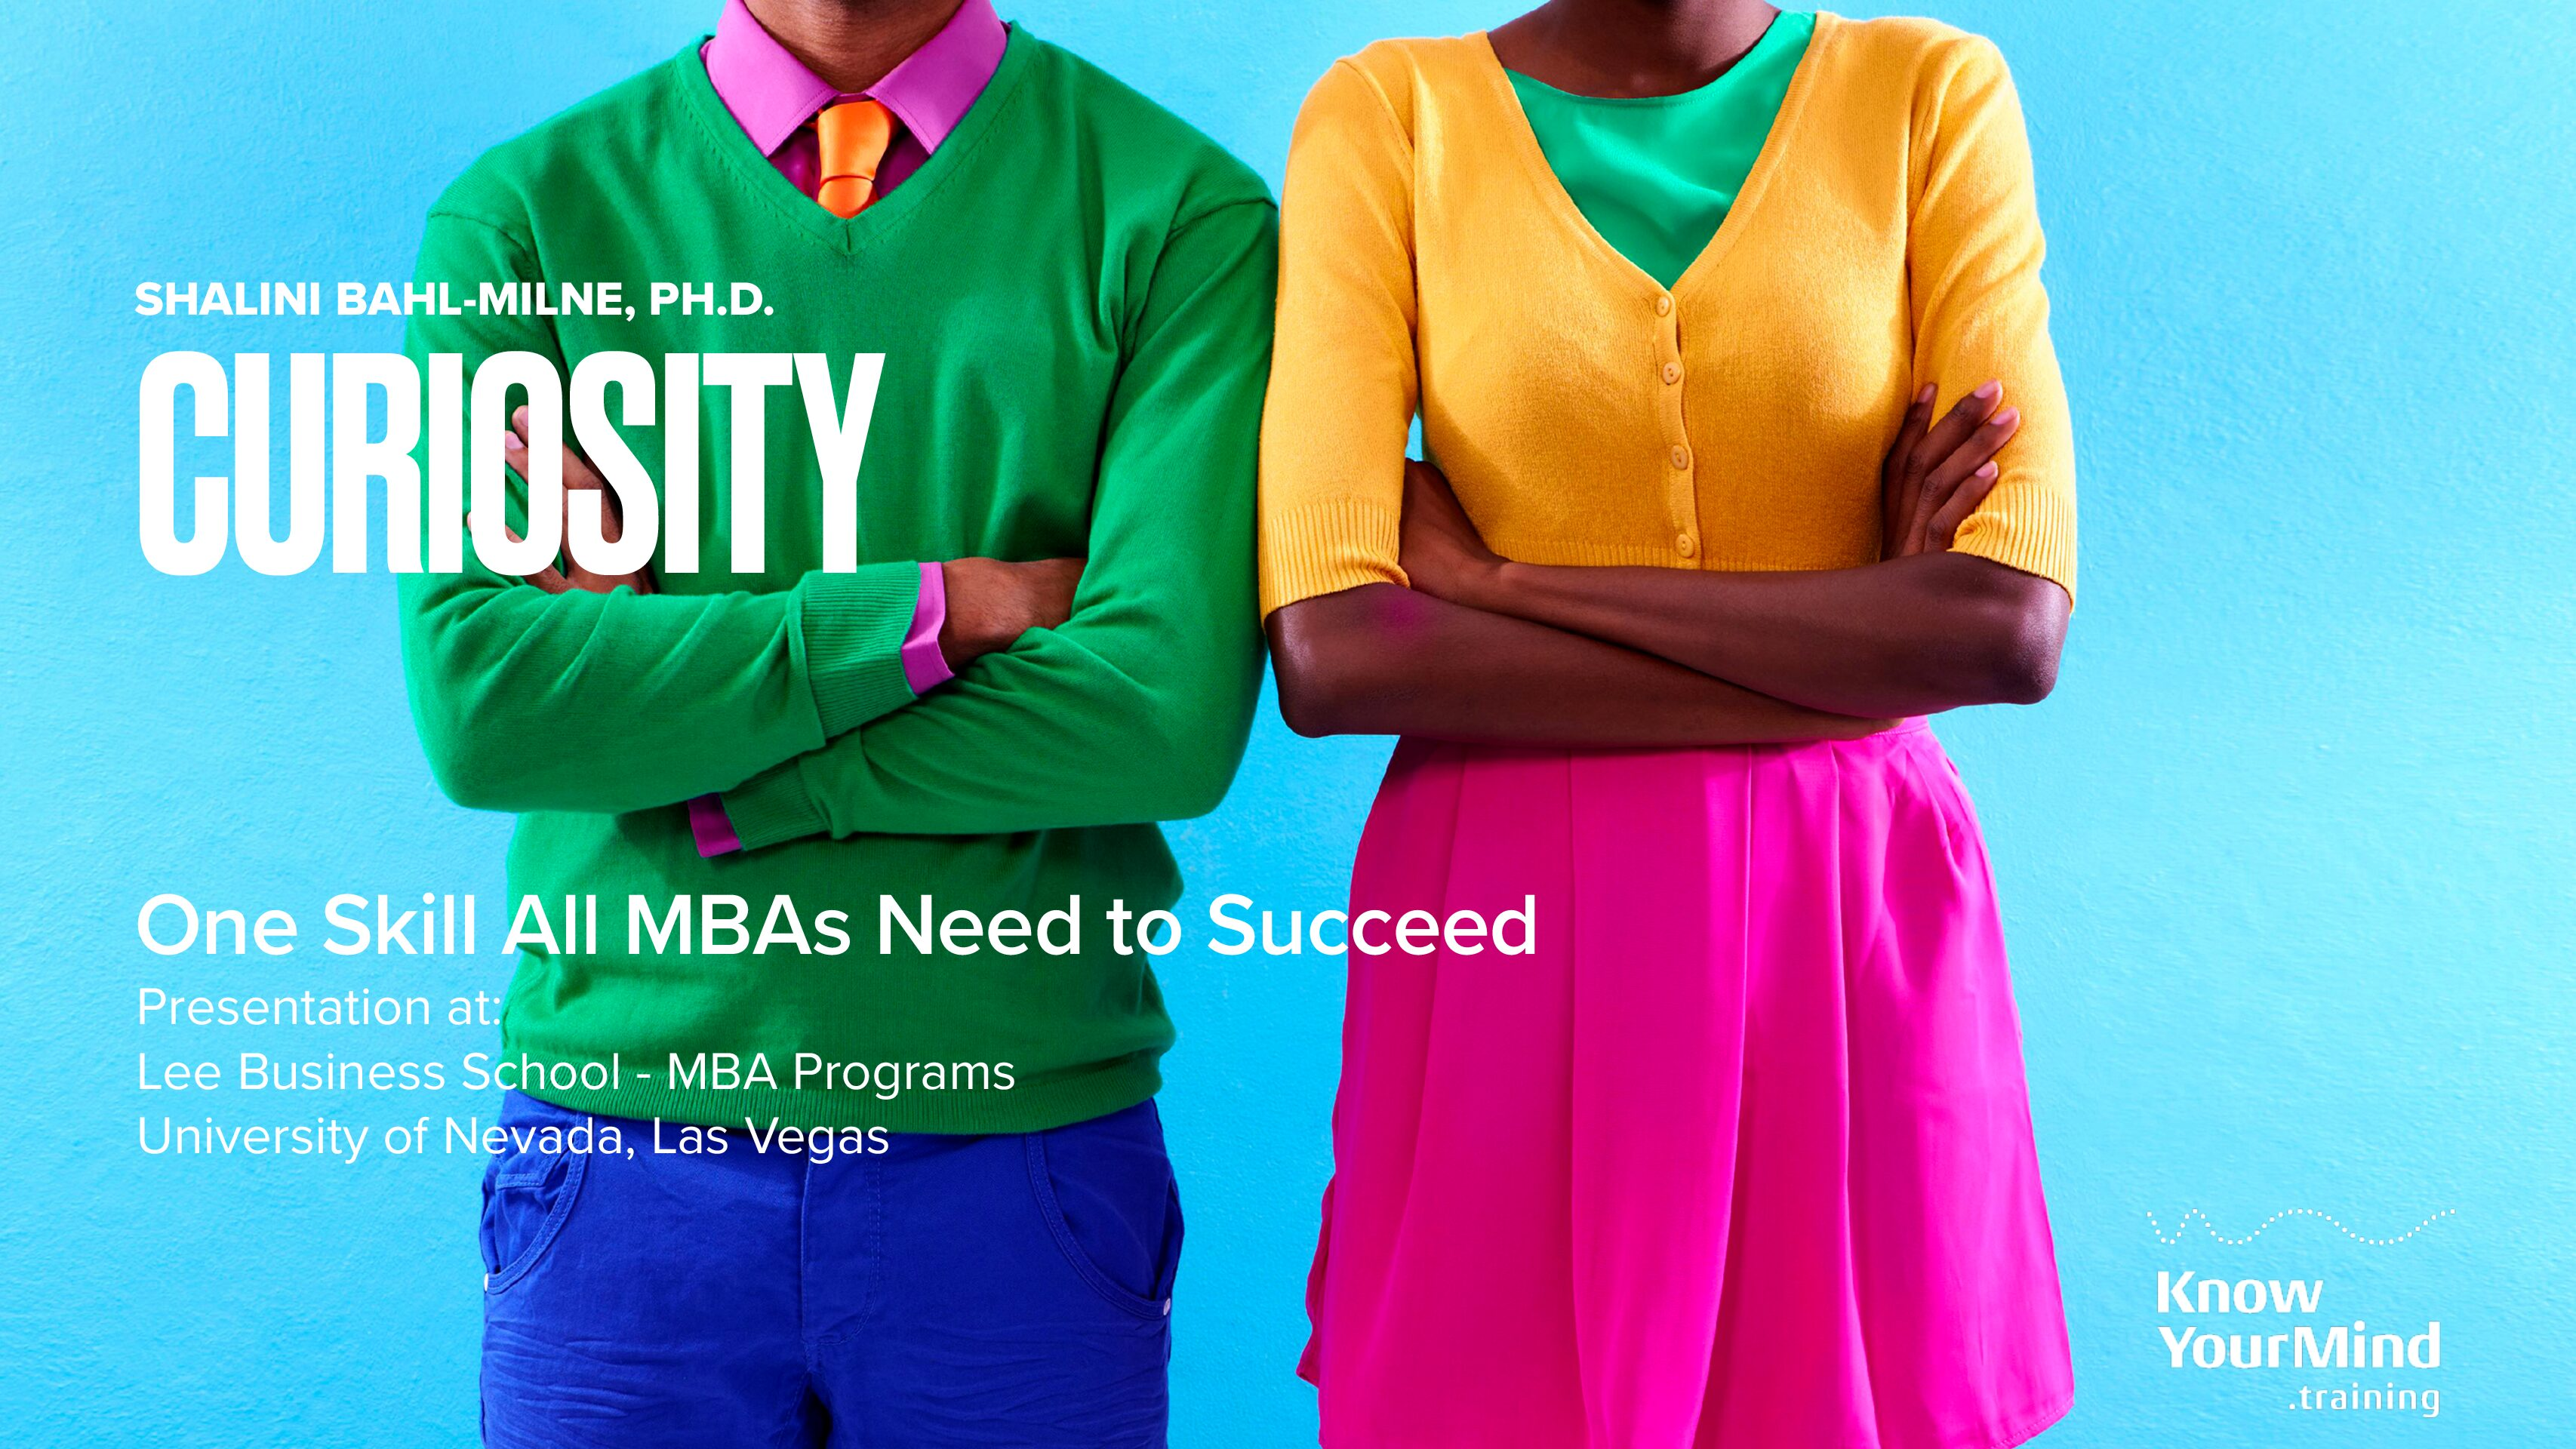 Curiosity: One Skill All MBAs Need to Succeed